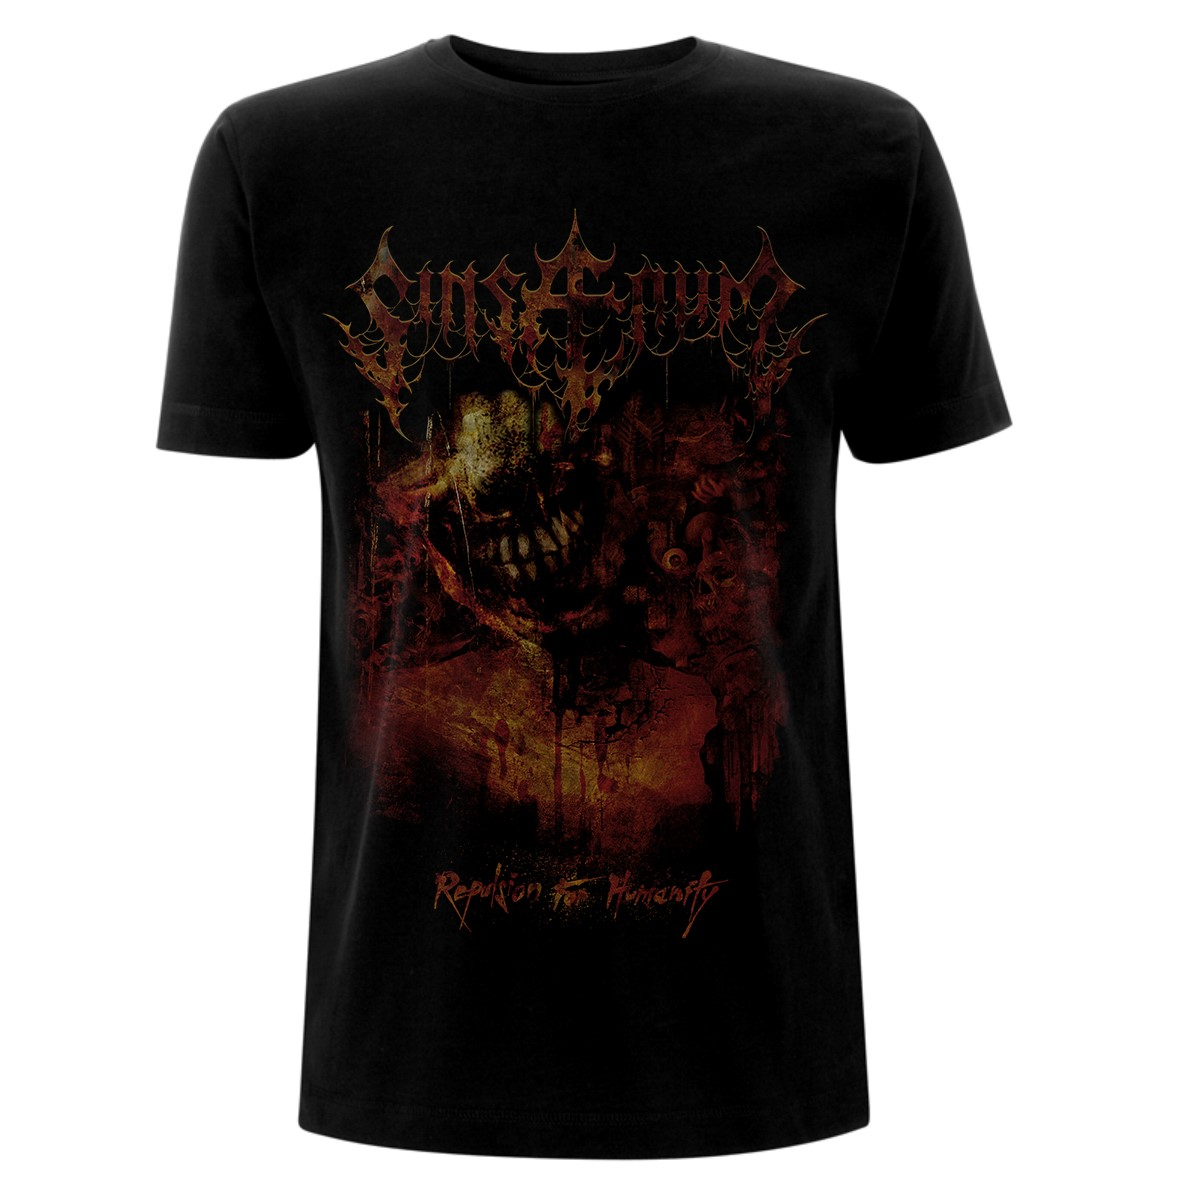 Repulsion For Humanity – Tee - Sinsaenum